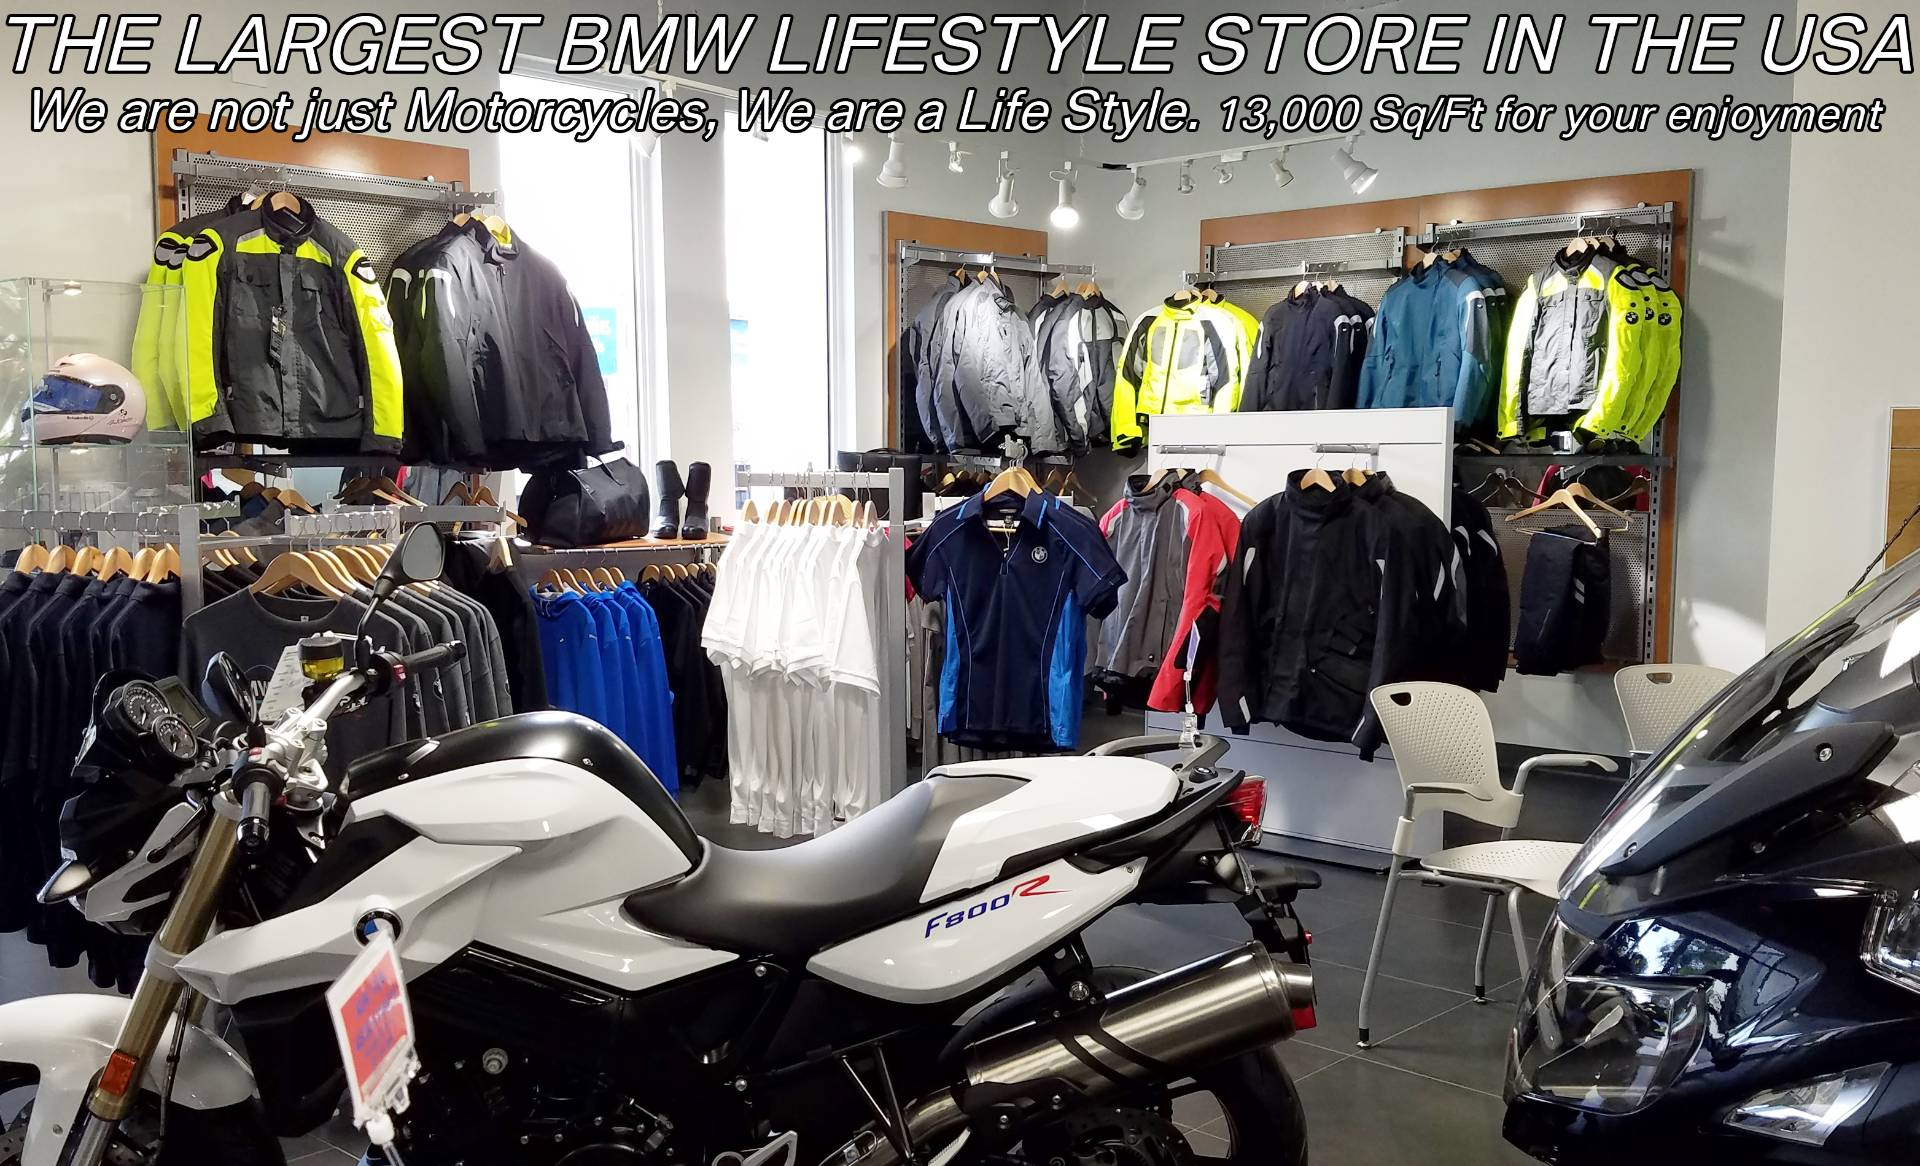 New 2019 BMW R 1250 GS for sale, New BMW for sale R 1250GS, New BMW Motorcycle R1250GS for sale, new BMW 1250GS, R1250GS, GS. BMW Motorcycles of Miami, Motorcycles of Miami, Motorcycles Miami, New Motorcycles, Used Motorcycles, pre-owned. #BMWMotorcyclesOfMiami #MotorcyclesOfMiami. - Photo 37